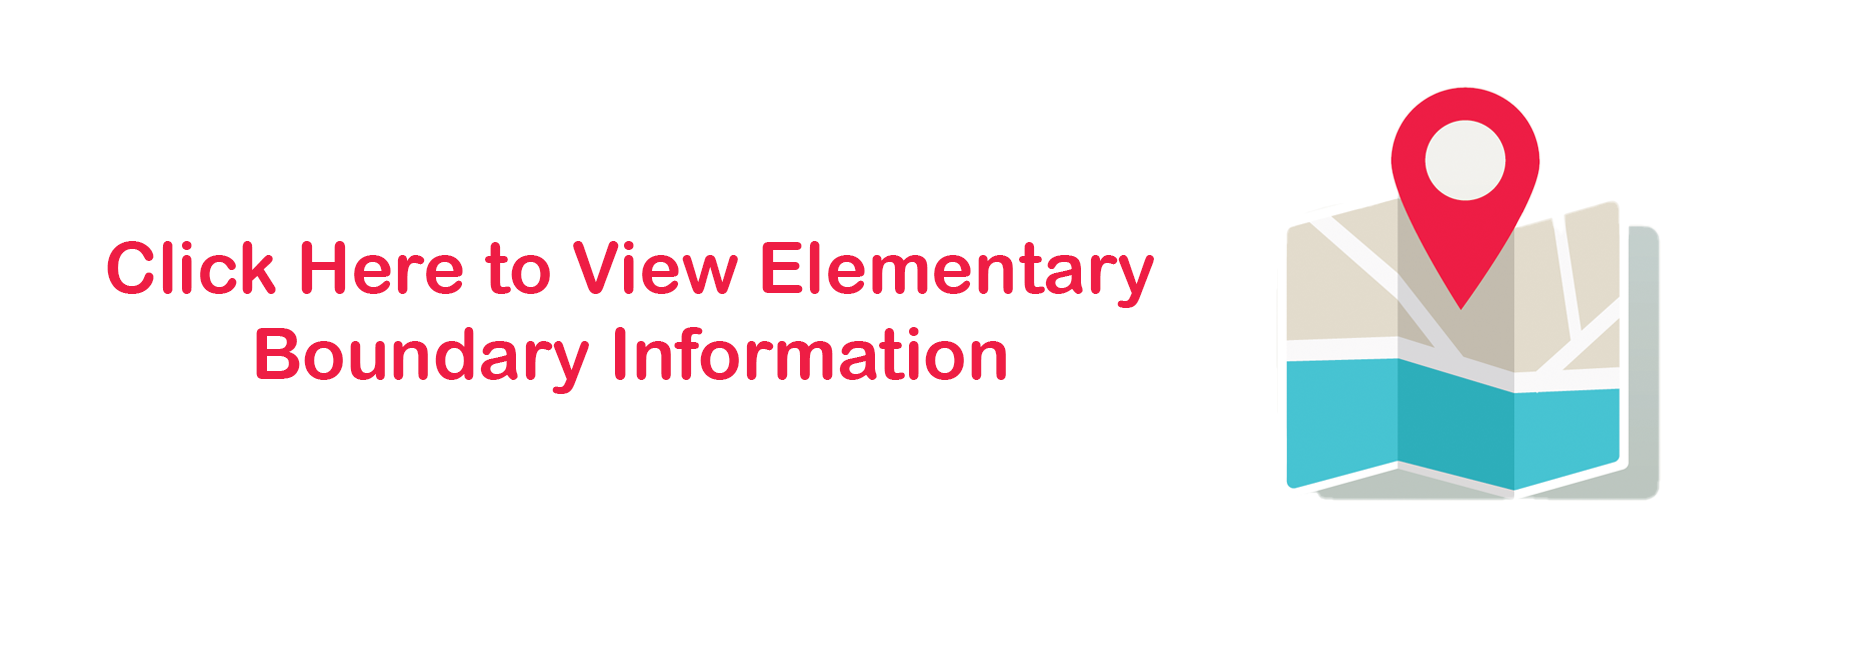 Click her to view elementary boundary information